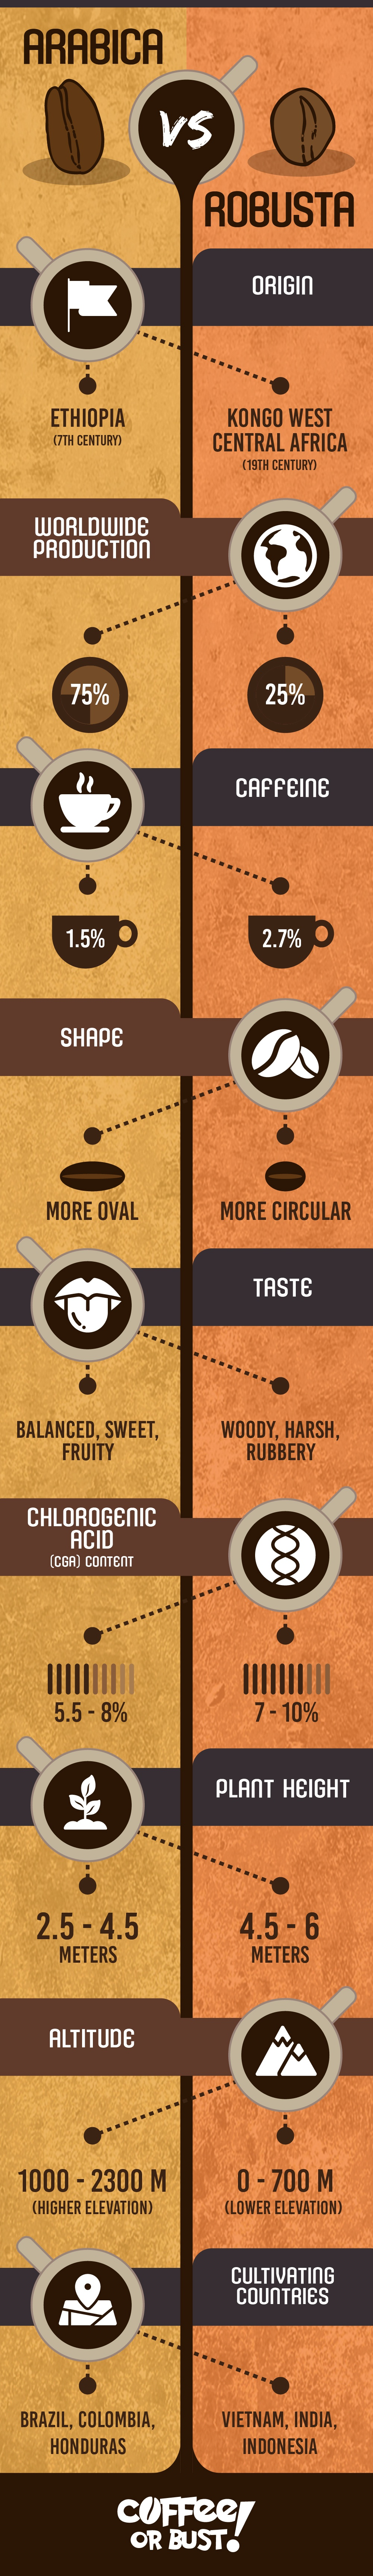 How Much Caffeine is in Decaf Coffee?